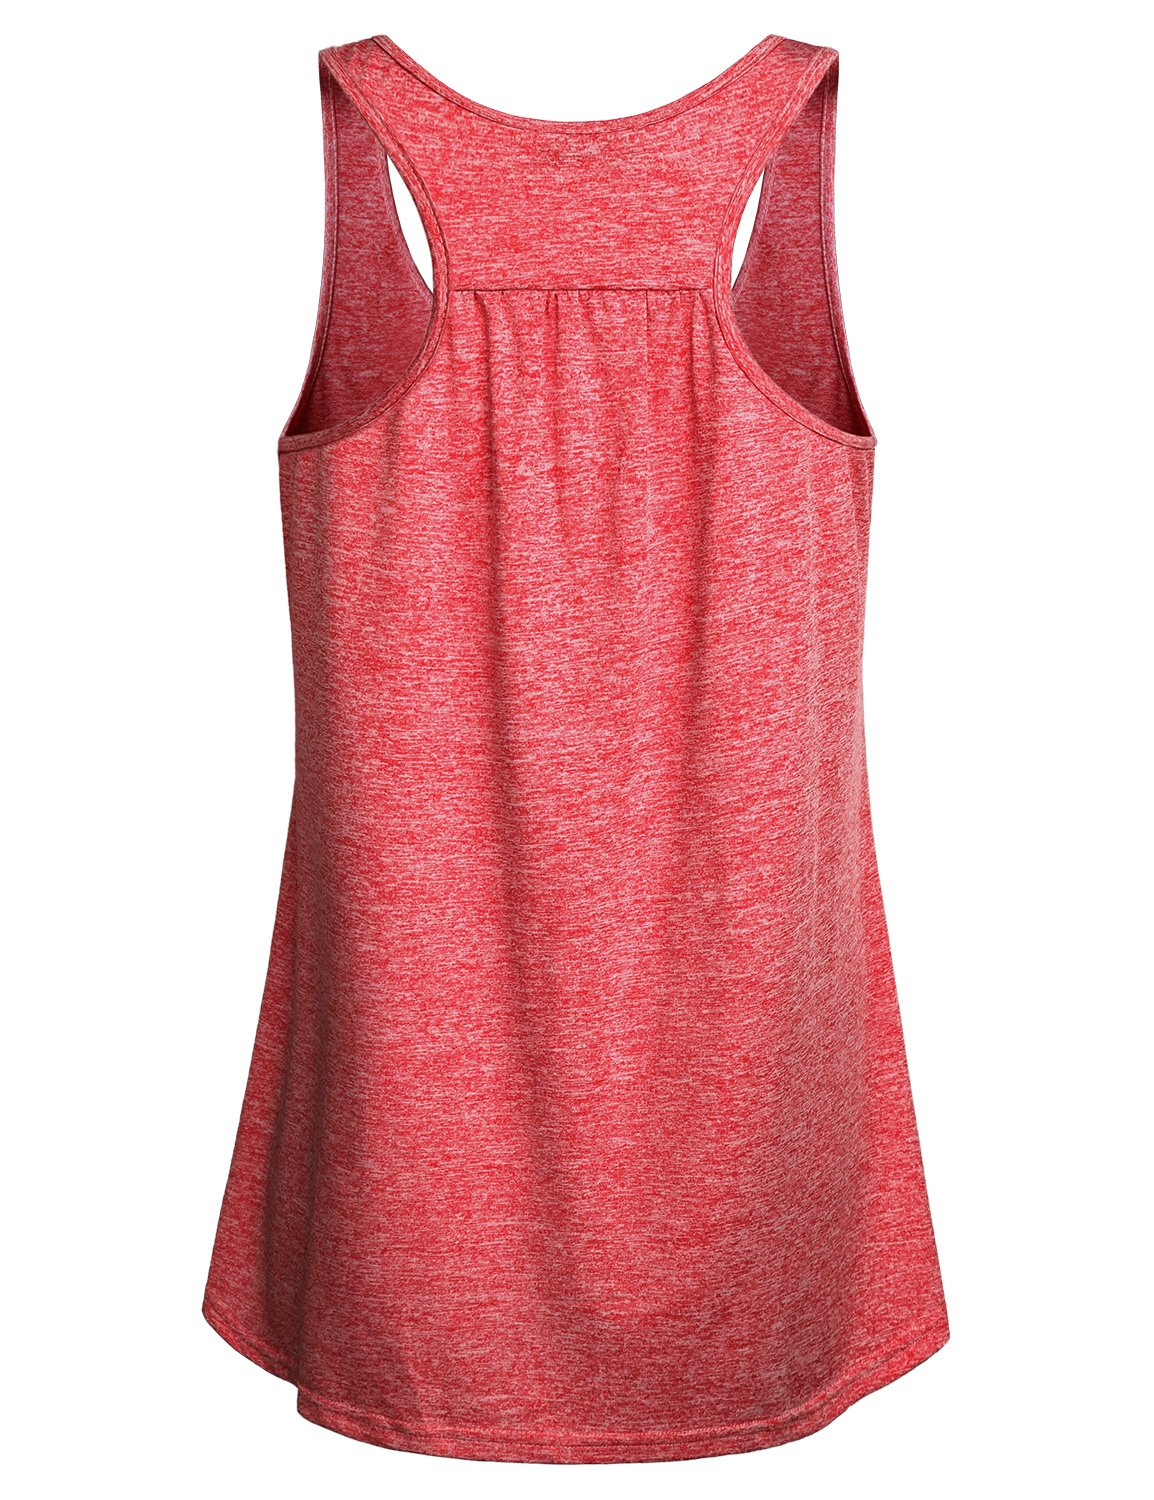 Miusey Tank Tops for Women Juniors Sleeveless Loose Fit Flowy Fitness Summer Activewear Running Yoga Workout Racerback in Sports Shirts Red M by Miusey (Image #2)